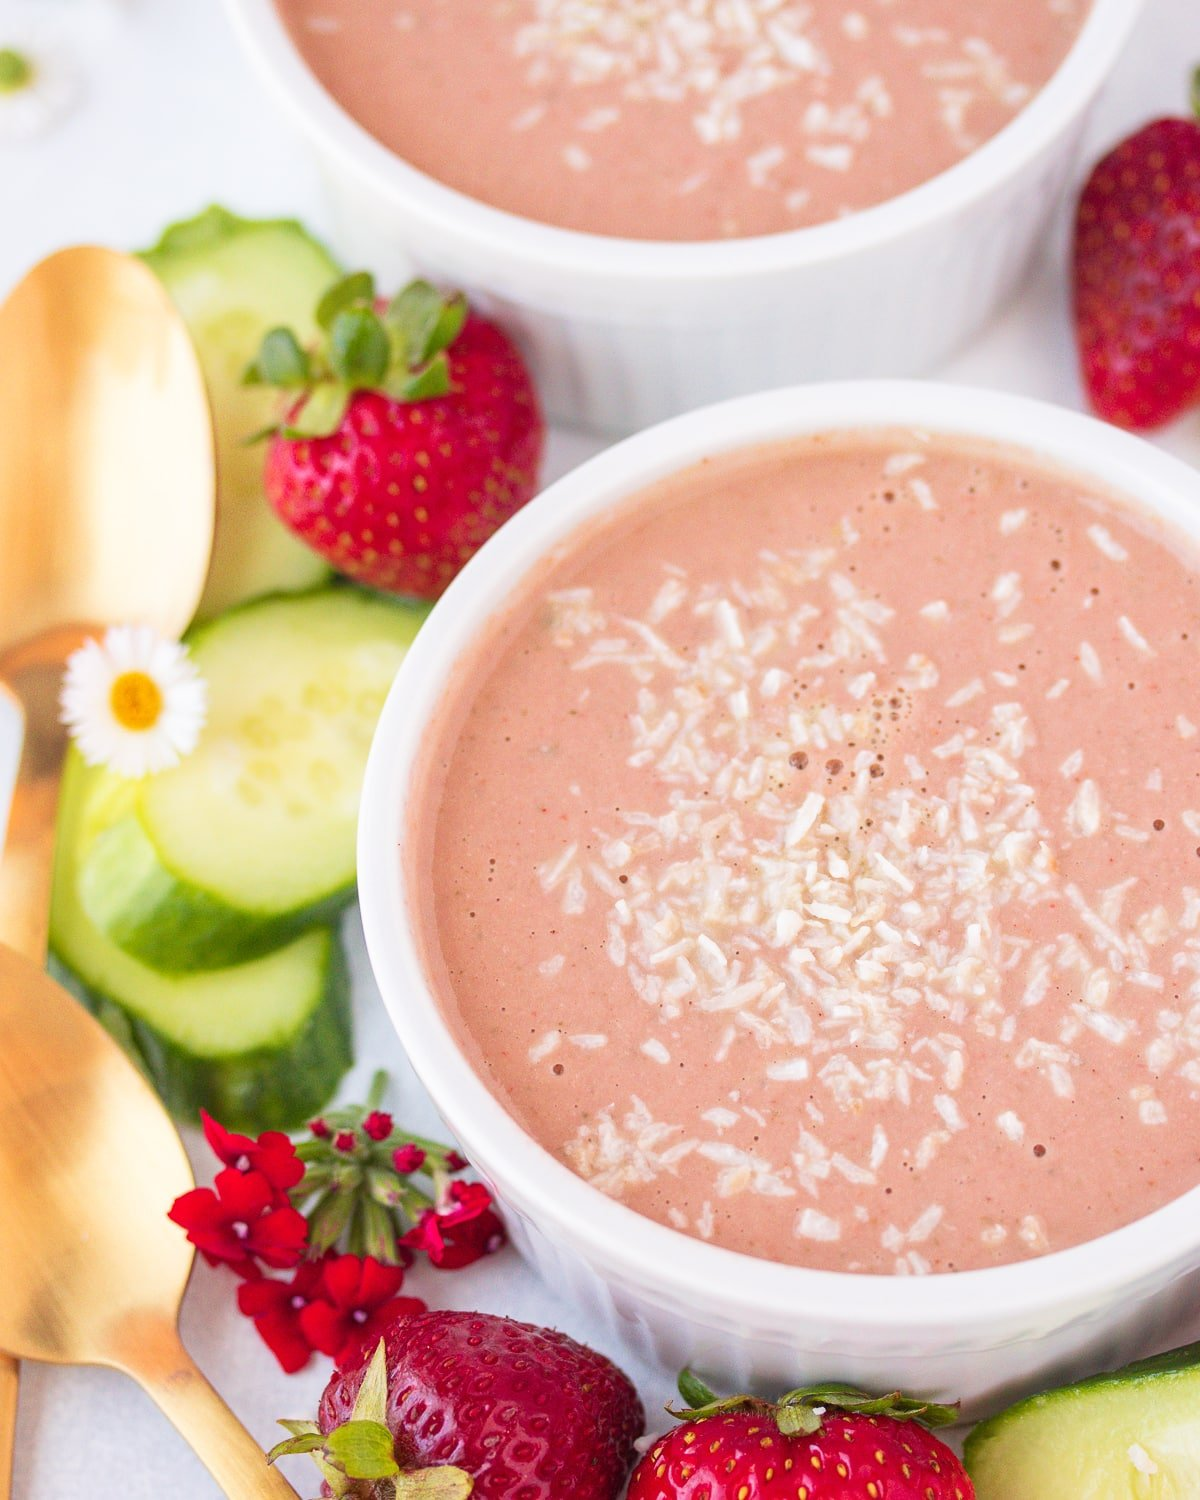 two bowls of strawberry soup with shredded coconut on top